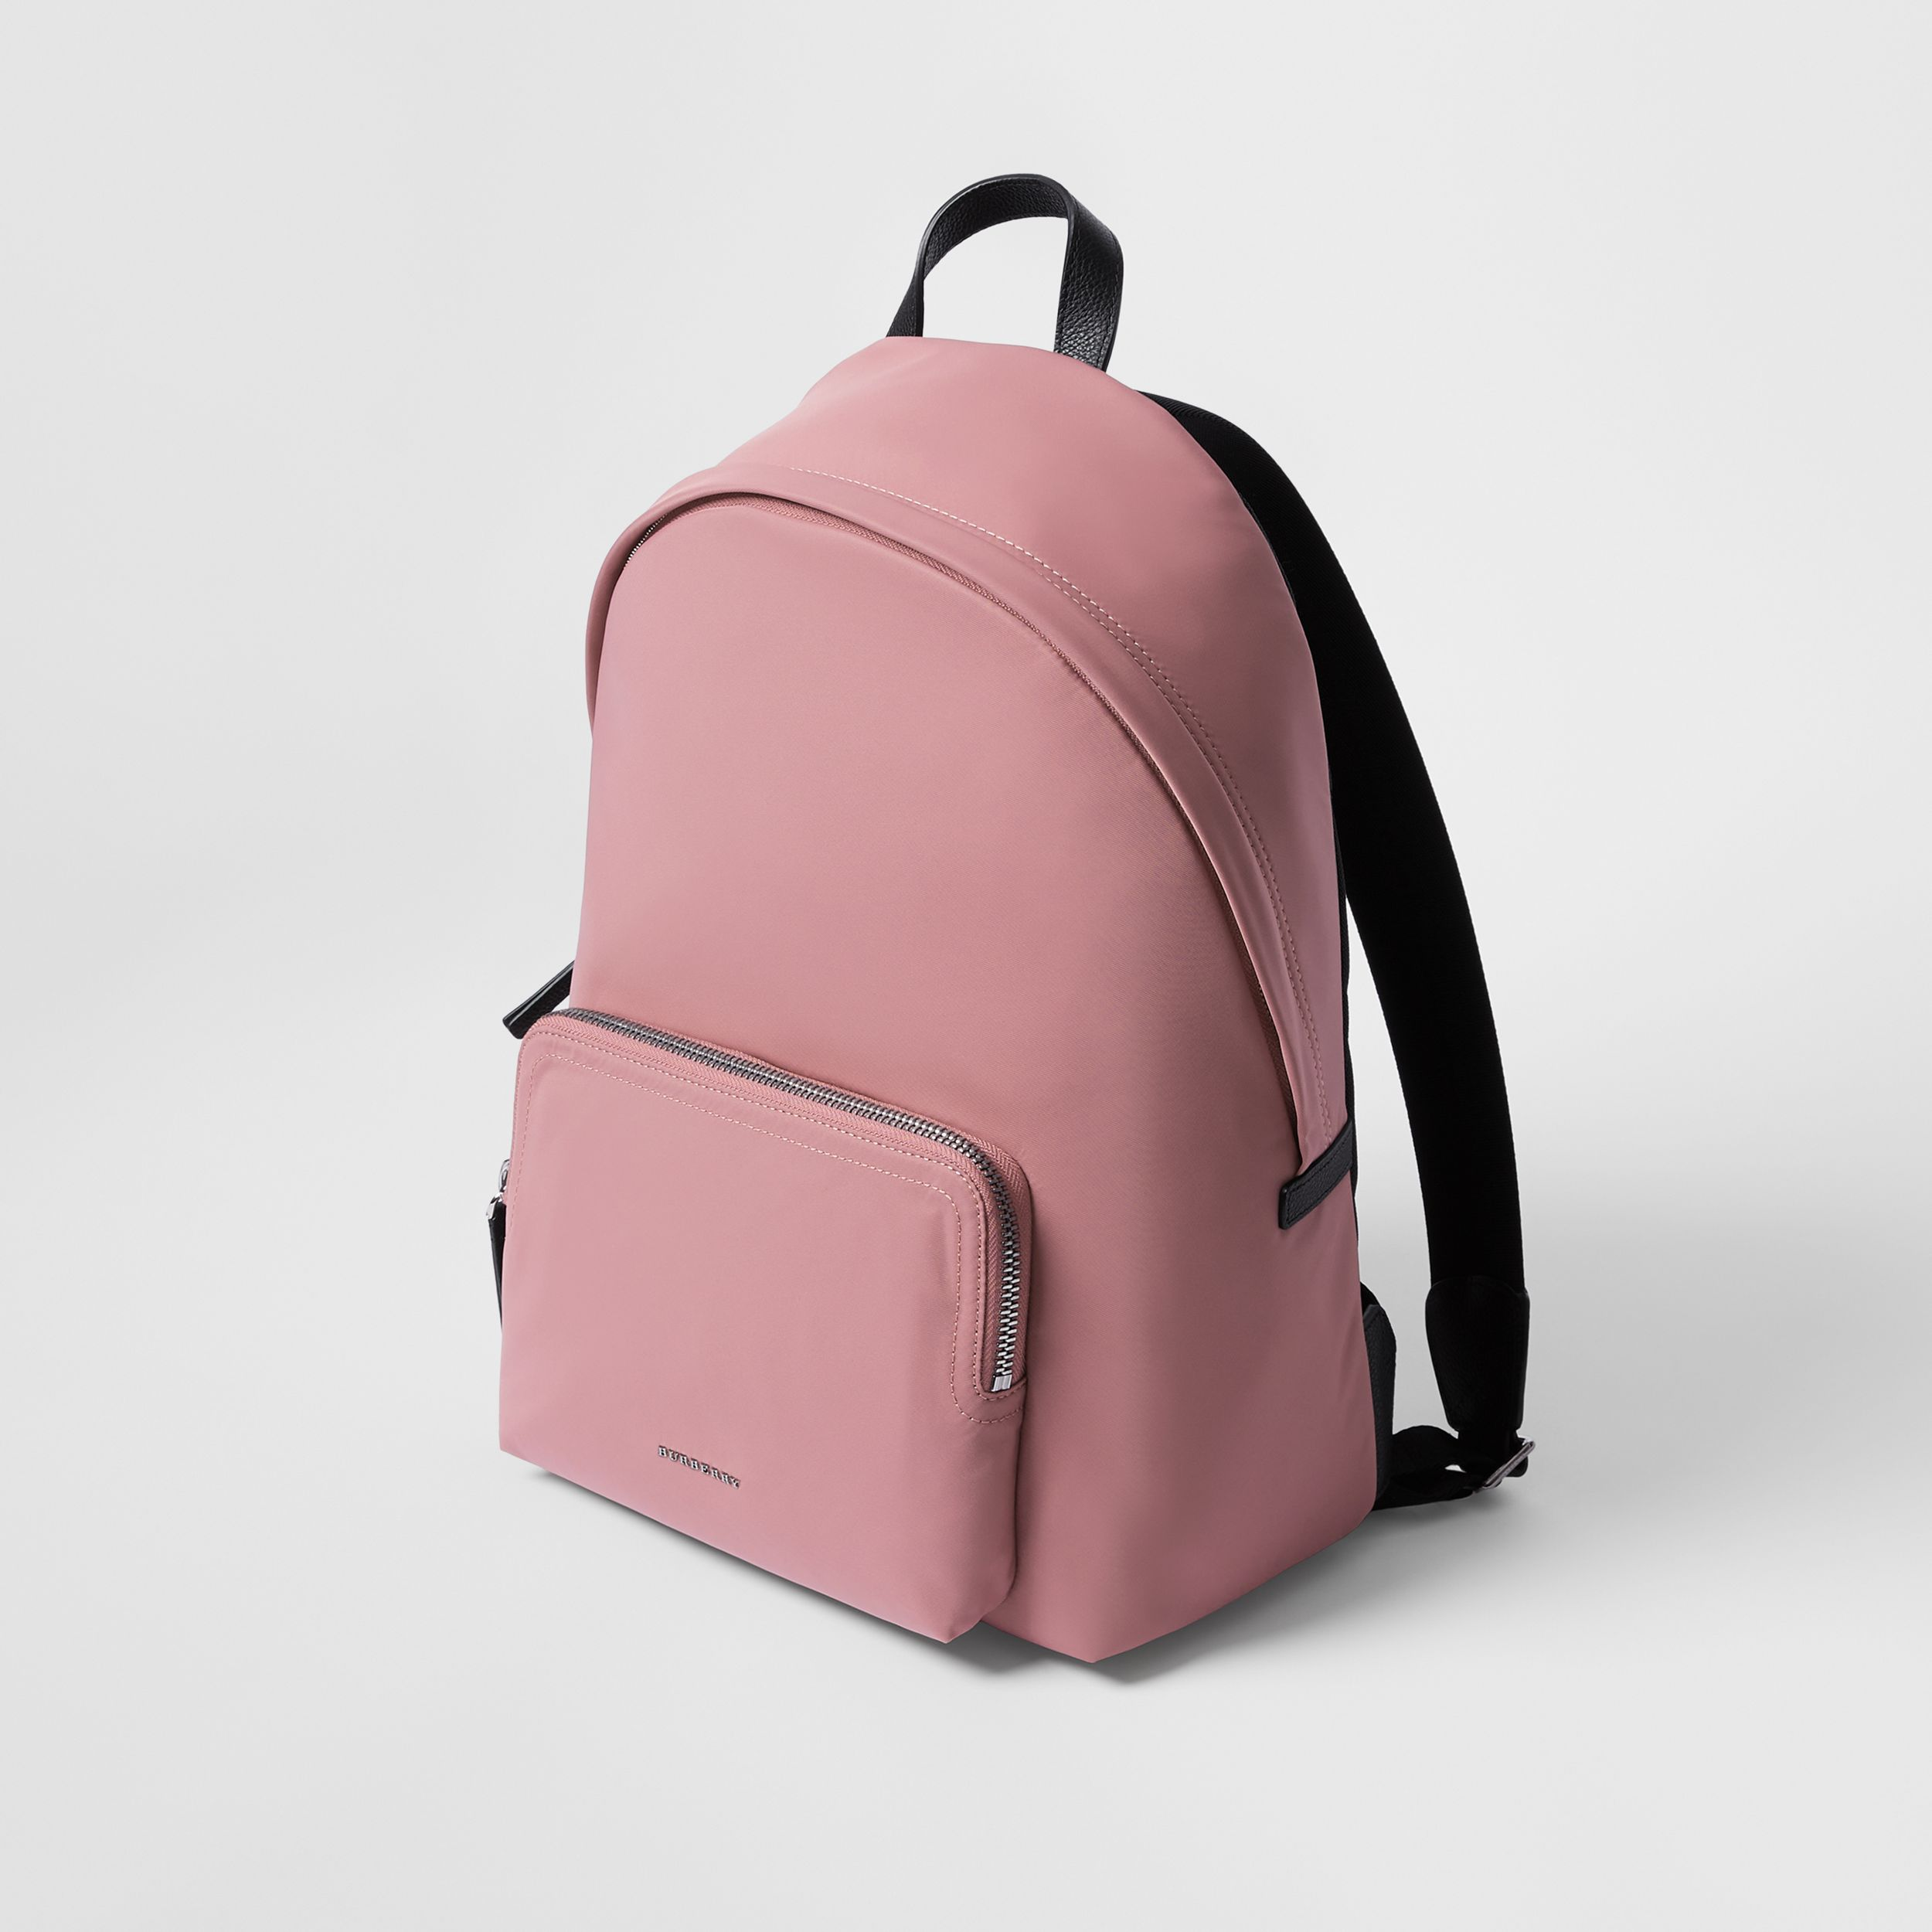 Logo Detail Backpack in Mauve Pink | Burberry - 3